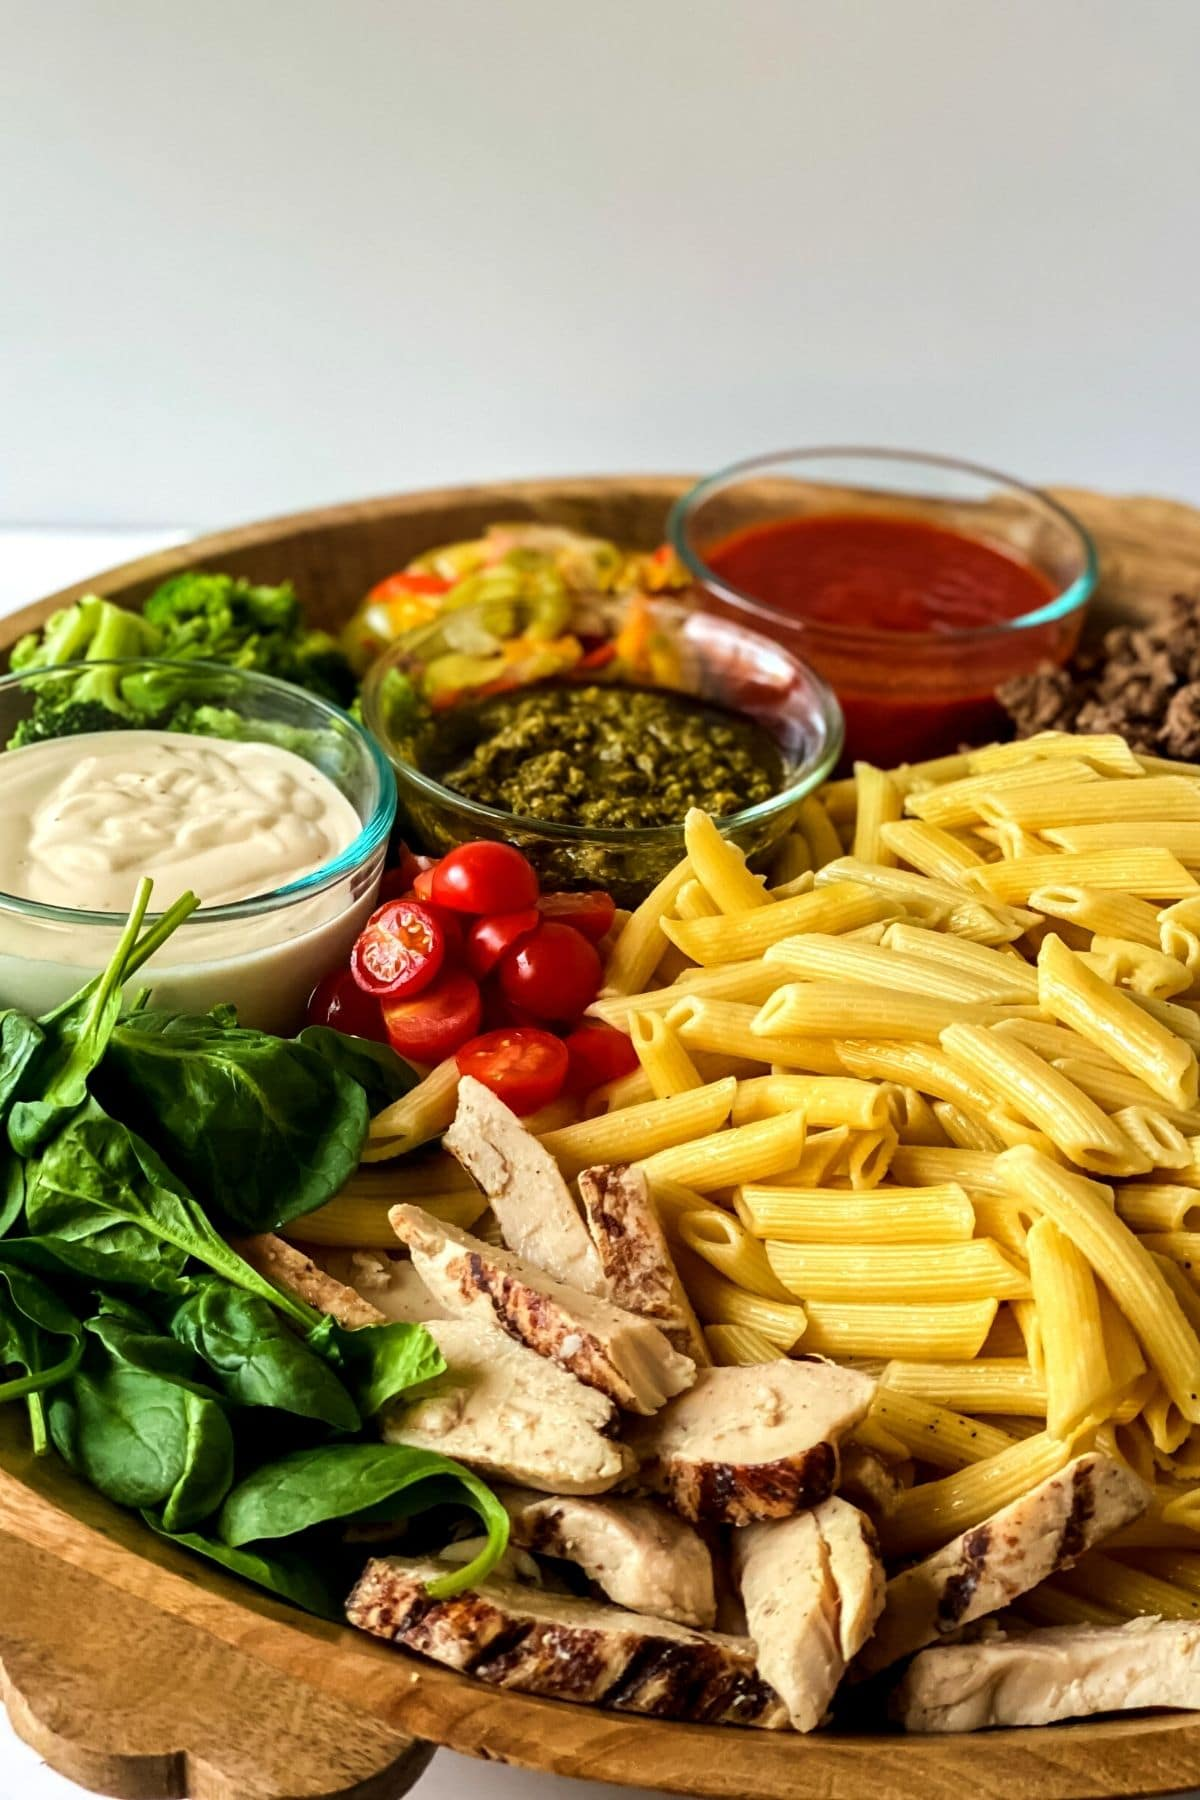 Charcuterie board with pasta and vegetables